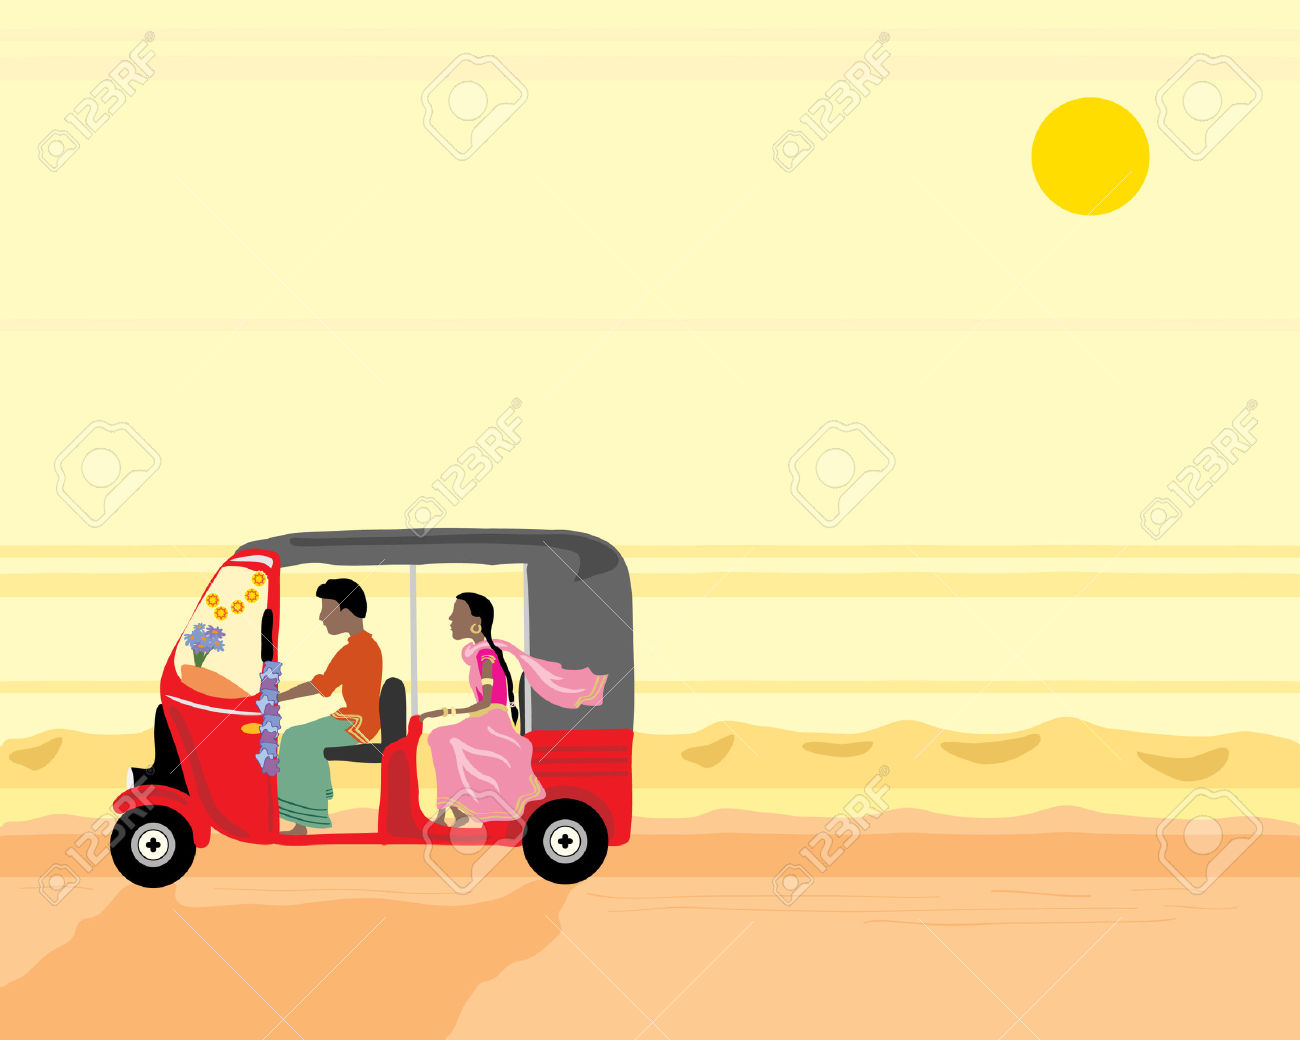 A Hand Drawn Illustration Of A Tuk Tuk With Two People Travelling.